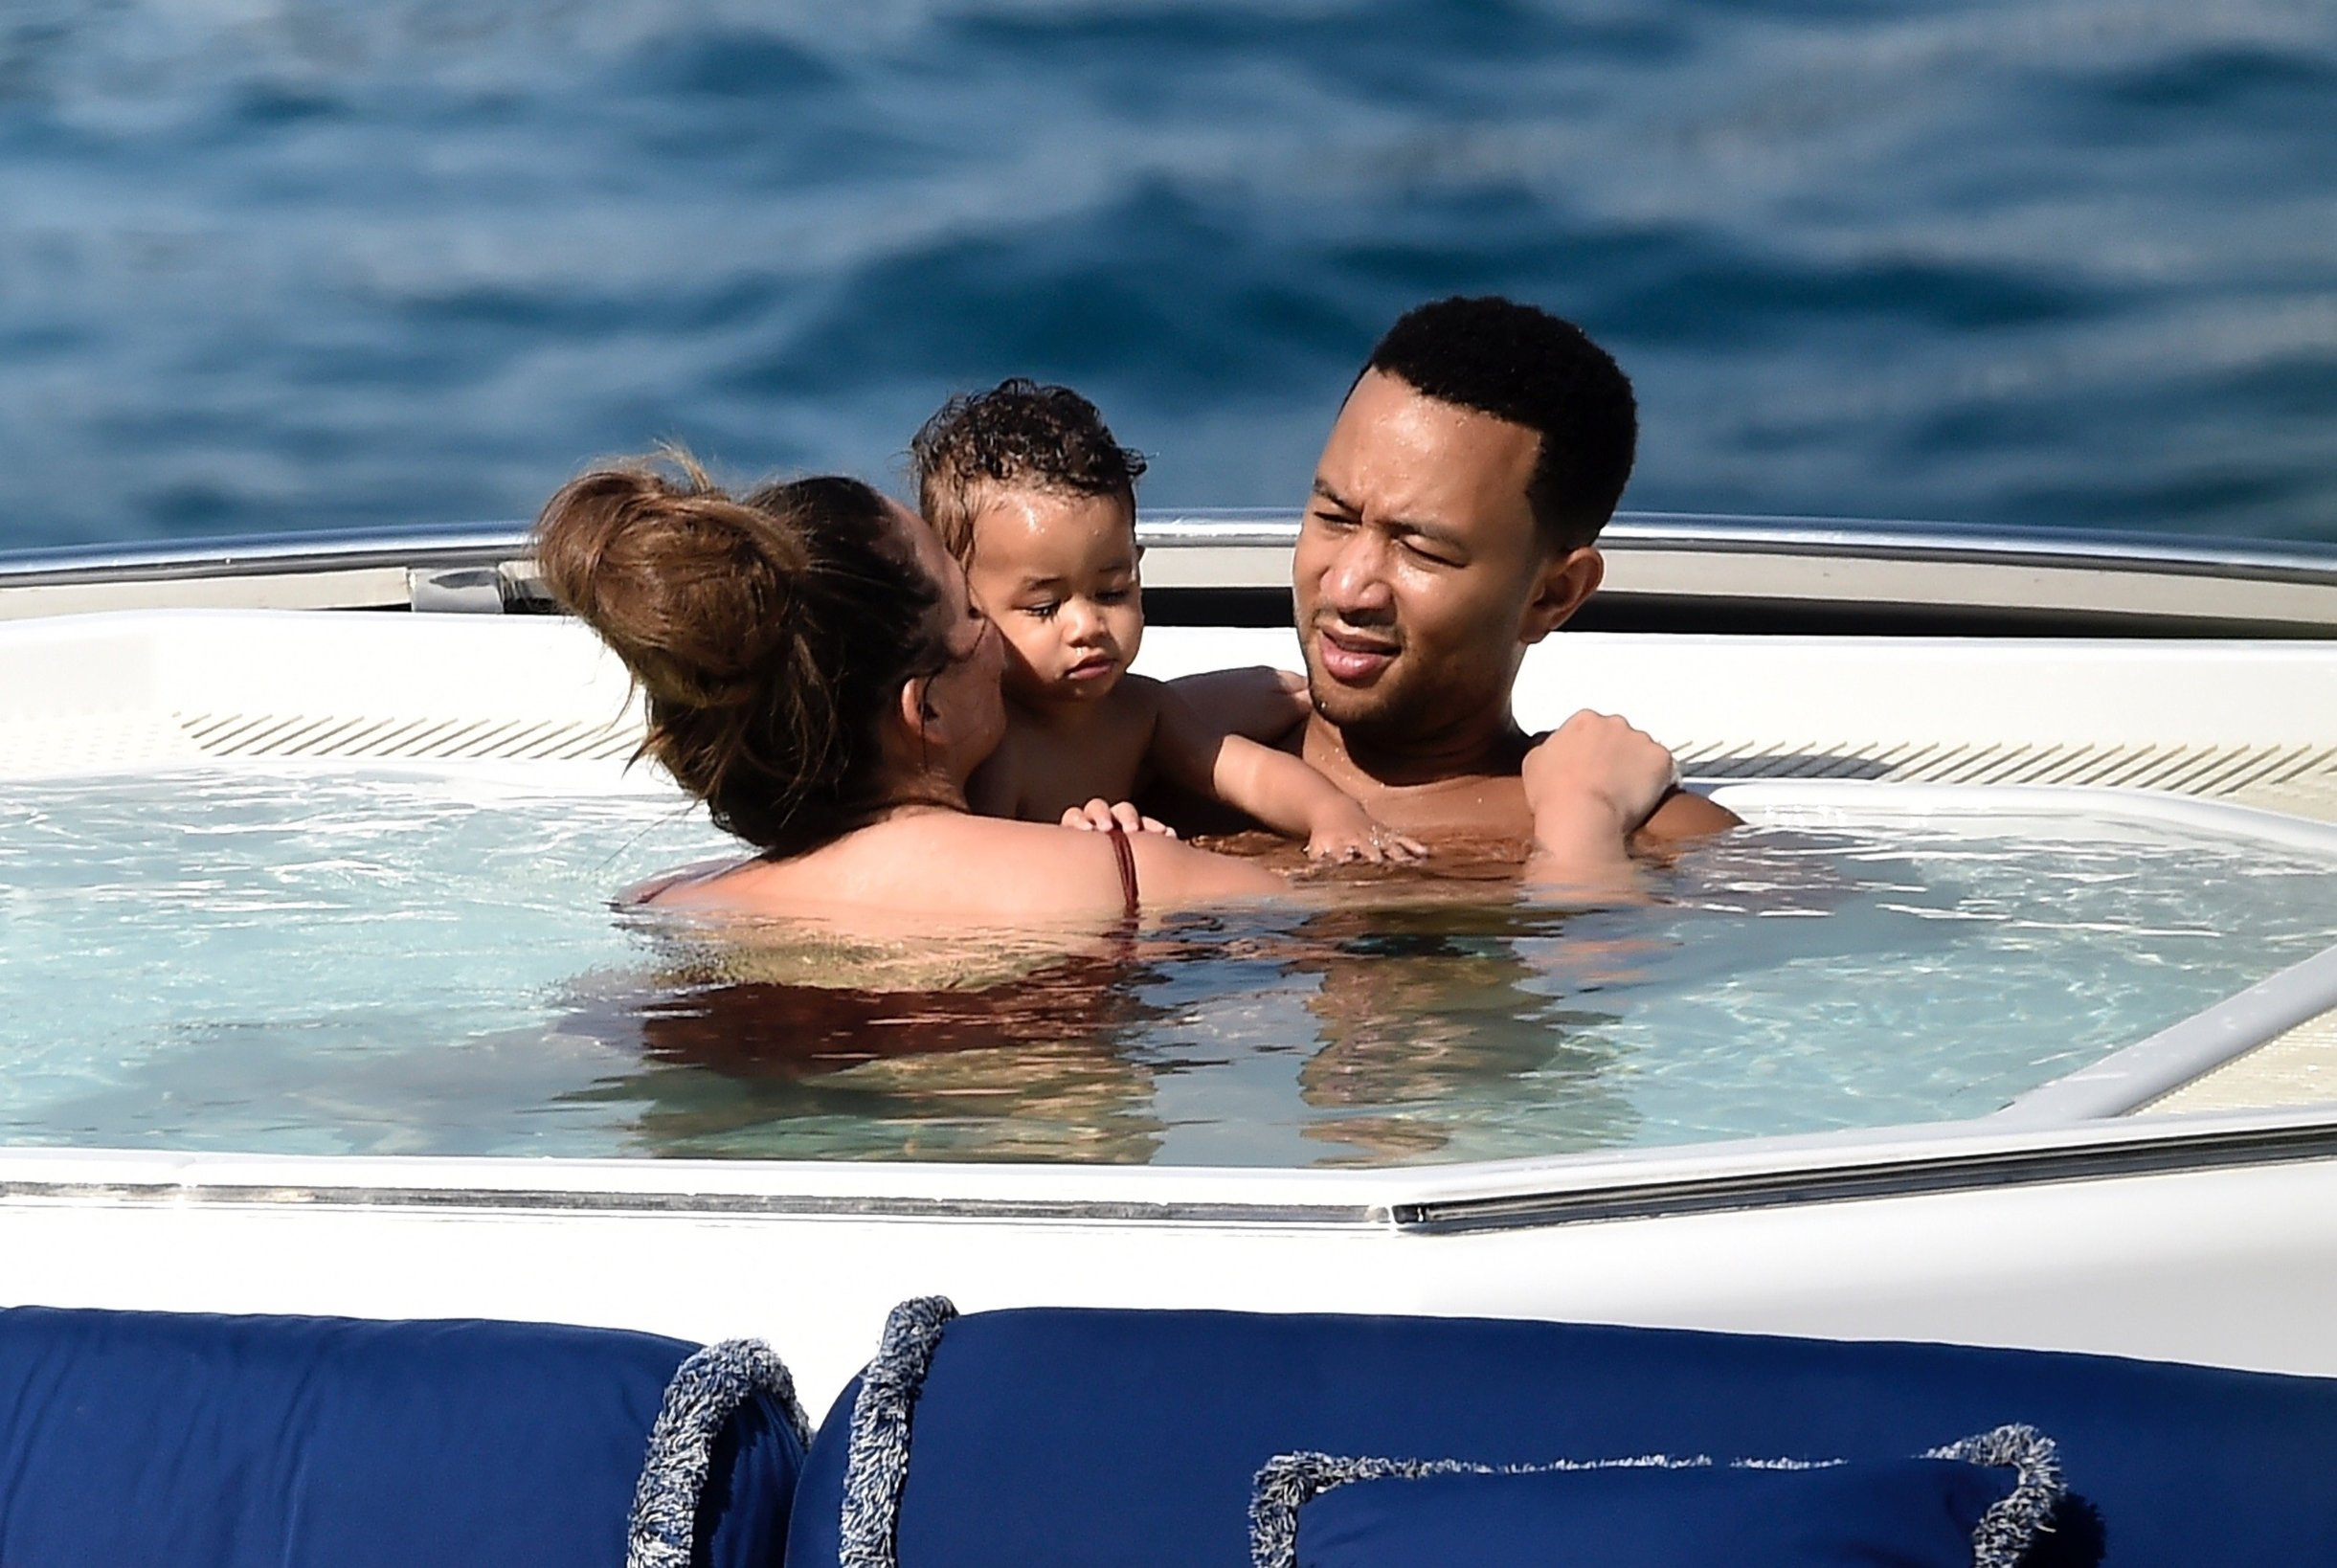 Portofino, ITALY  - The American soul singer John Legend and  wife Chrissy Teigen take a boat ride on their Italian adventure holiday in Portofino.  BACKGRID UK 2 JULY 2019, Image: 453572730, License: Rights-managed, Restrictions: RIGHTS: WORLDWIDE EXCEPT IN ITALY, Model Release: no, Credit line: Profimedia, Backgrid UK